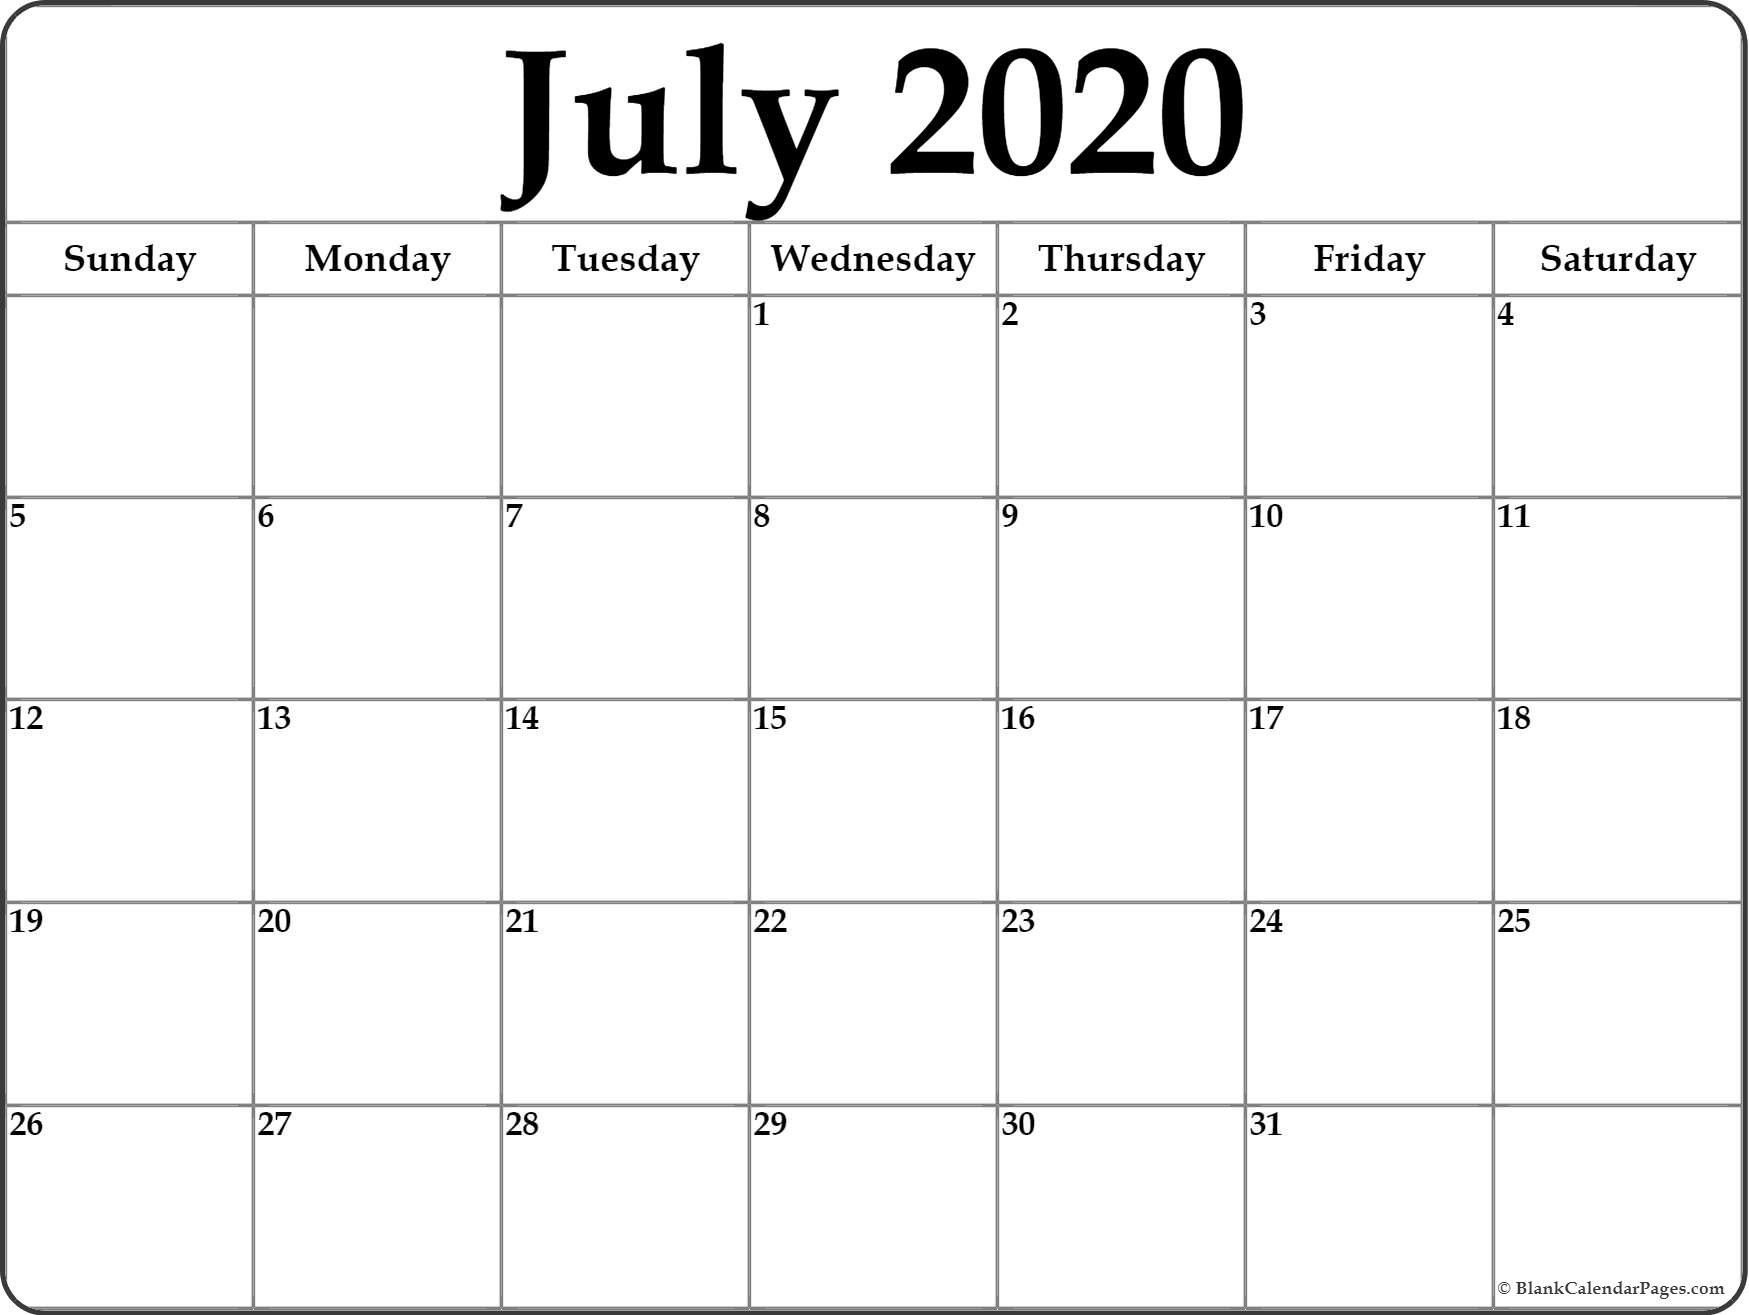 July 2020 Calendar | Free Printable Monthly Calendars-Monthly Calendar Printable June And July 2020